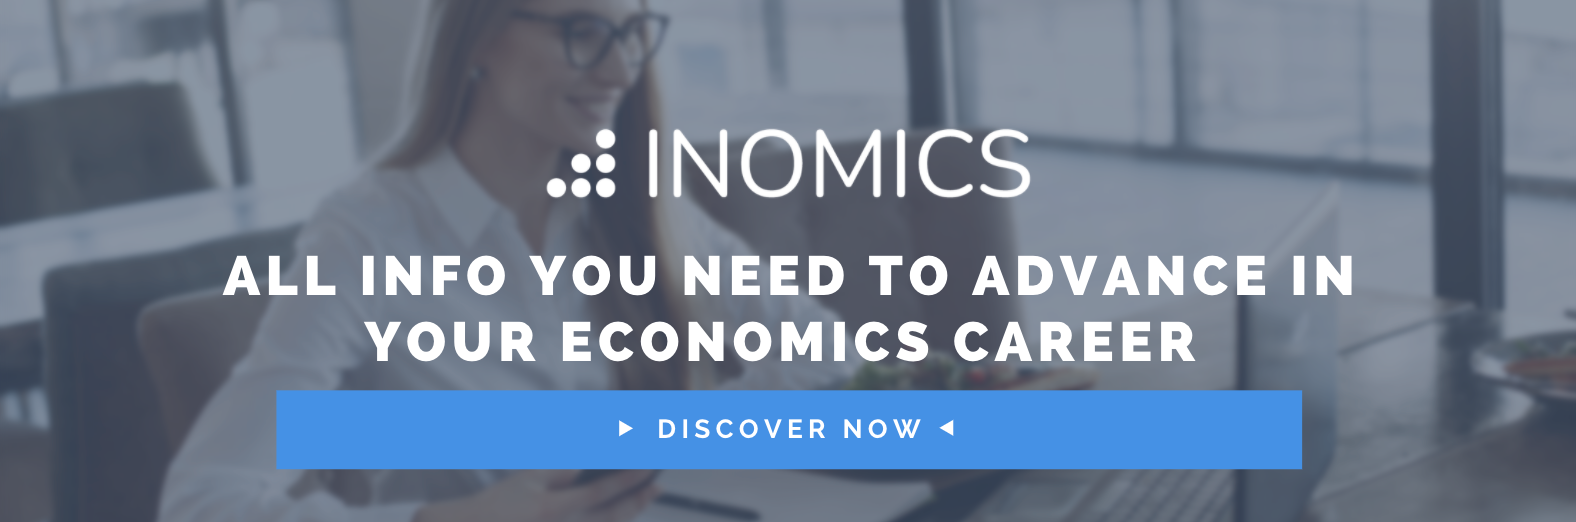 All info you need to advance in your economics career